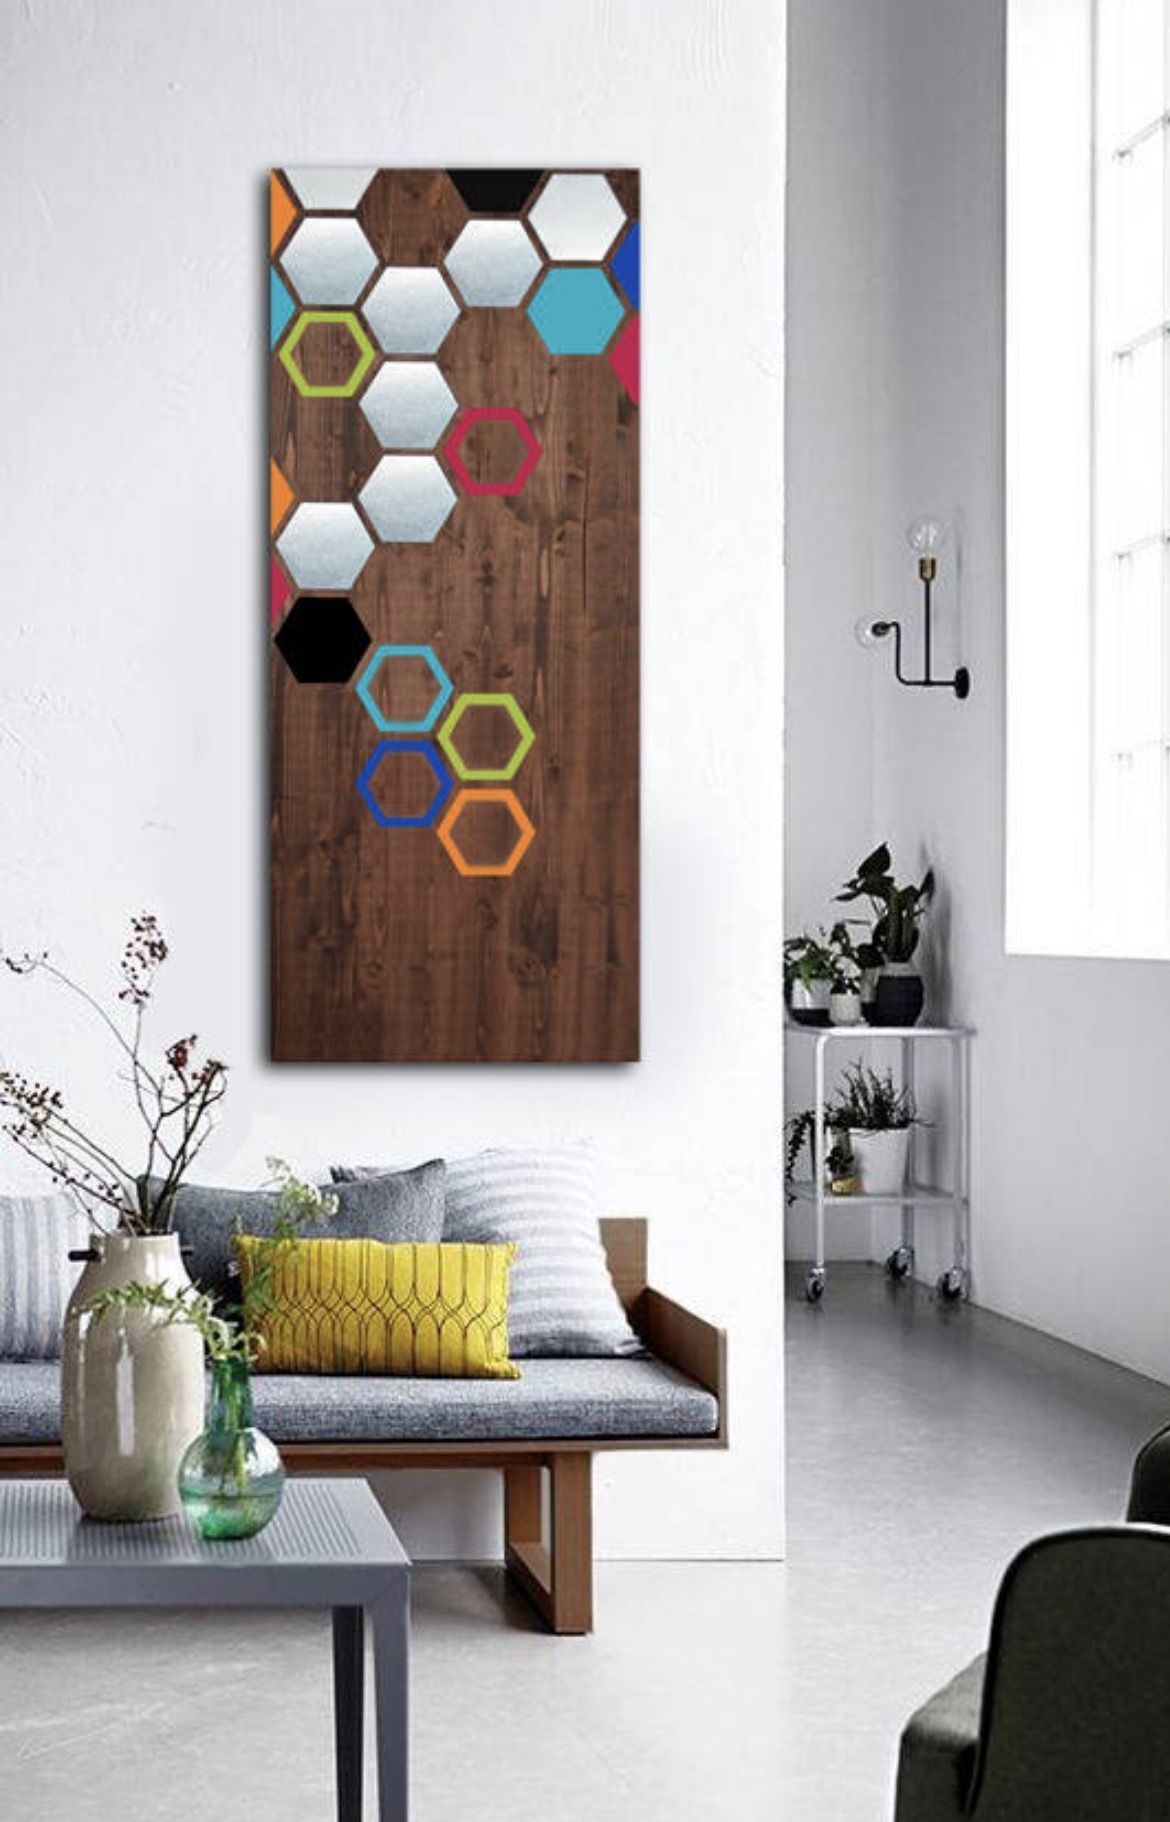 Widely Used Contemporary Geometric Wall Decor Inside Wood Wall Art, Metal Wall Art, Modern Art Painting, Geometric Art (View 6 of 20)